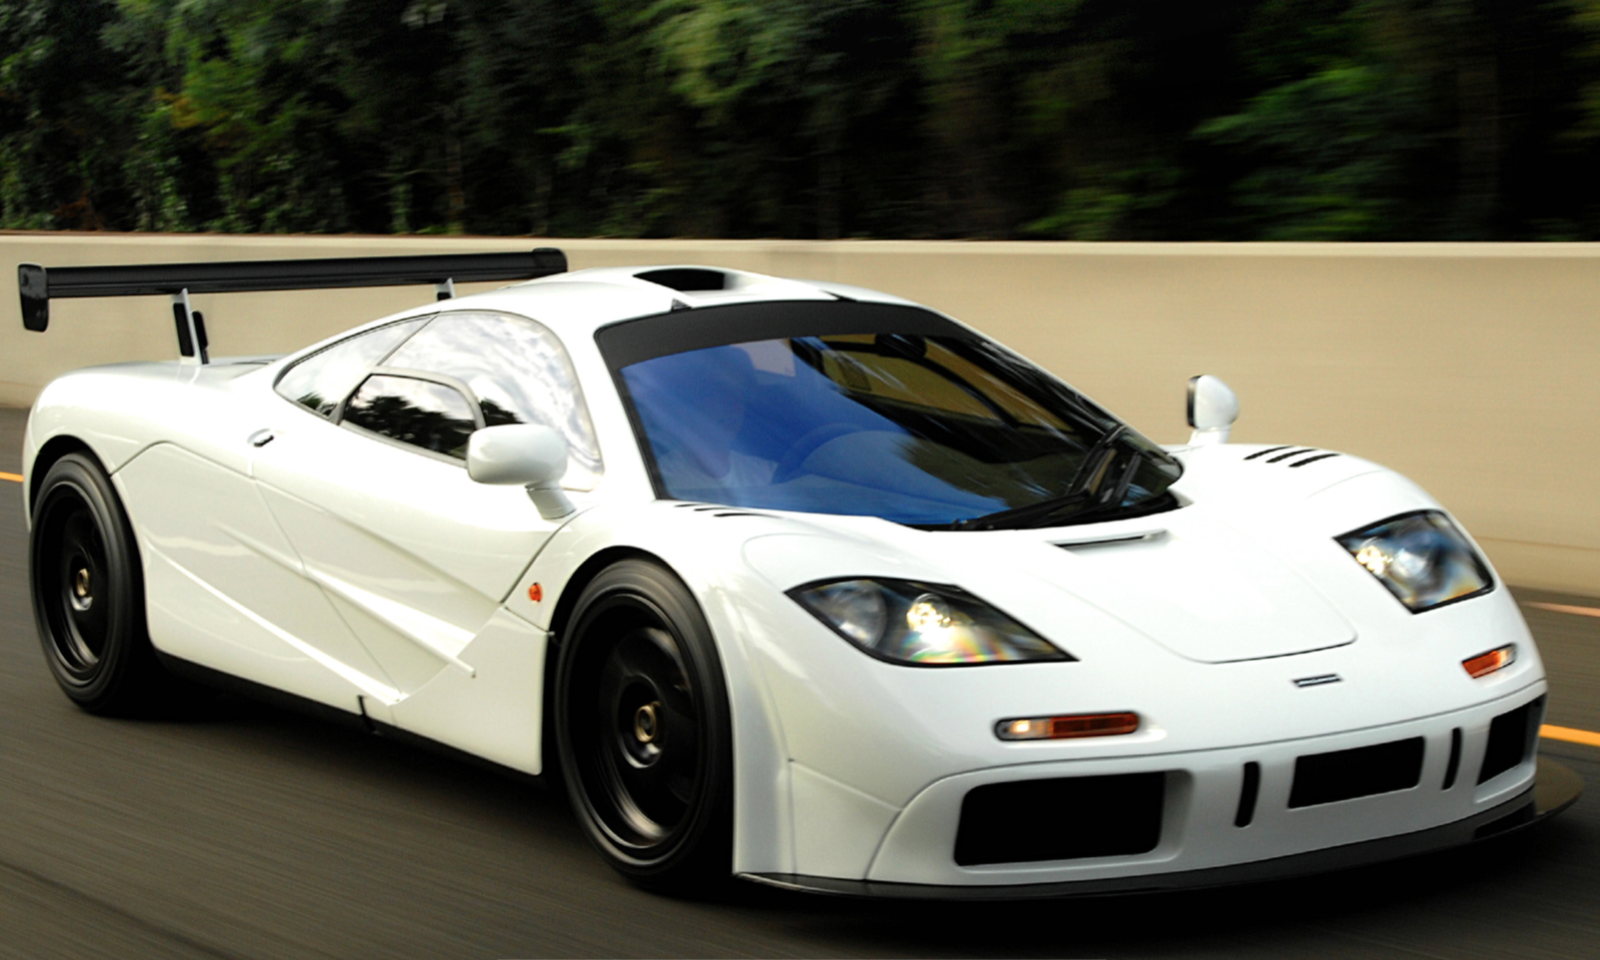 This Mclaren F1 Once Owned By The Sultan Of Brunei Could Be Yours